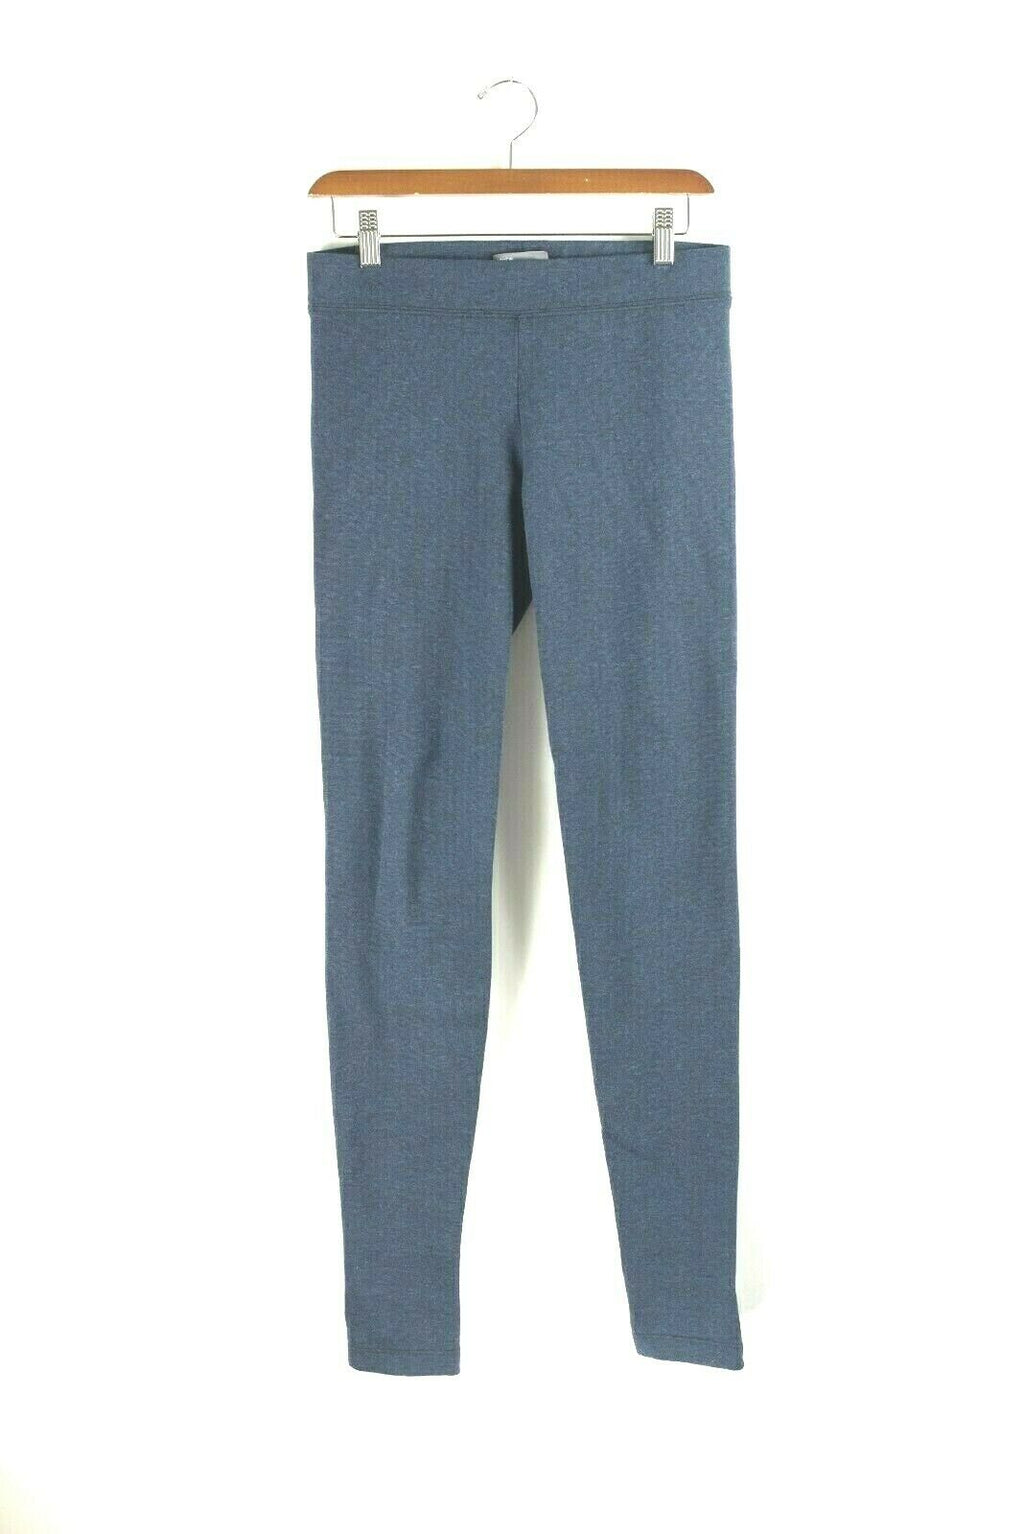 Vince Womens Size Small Blue Leggings Super Stretch Pull On Skinny Ankle Pants